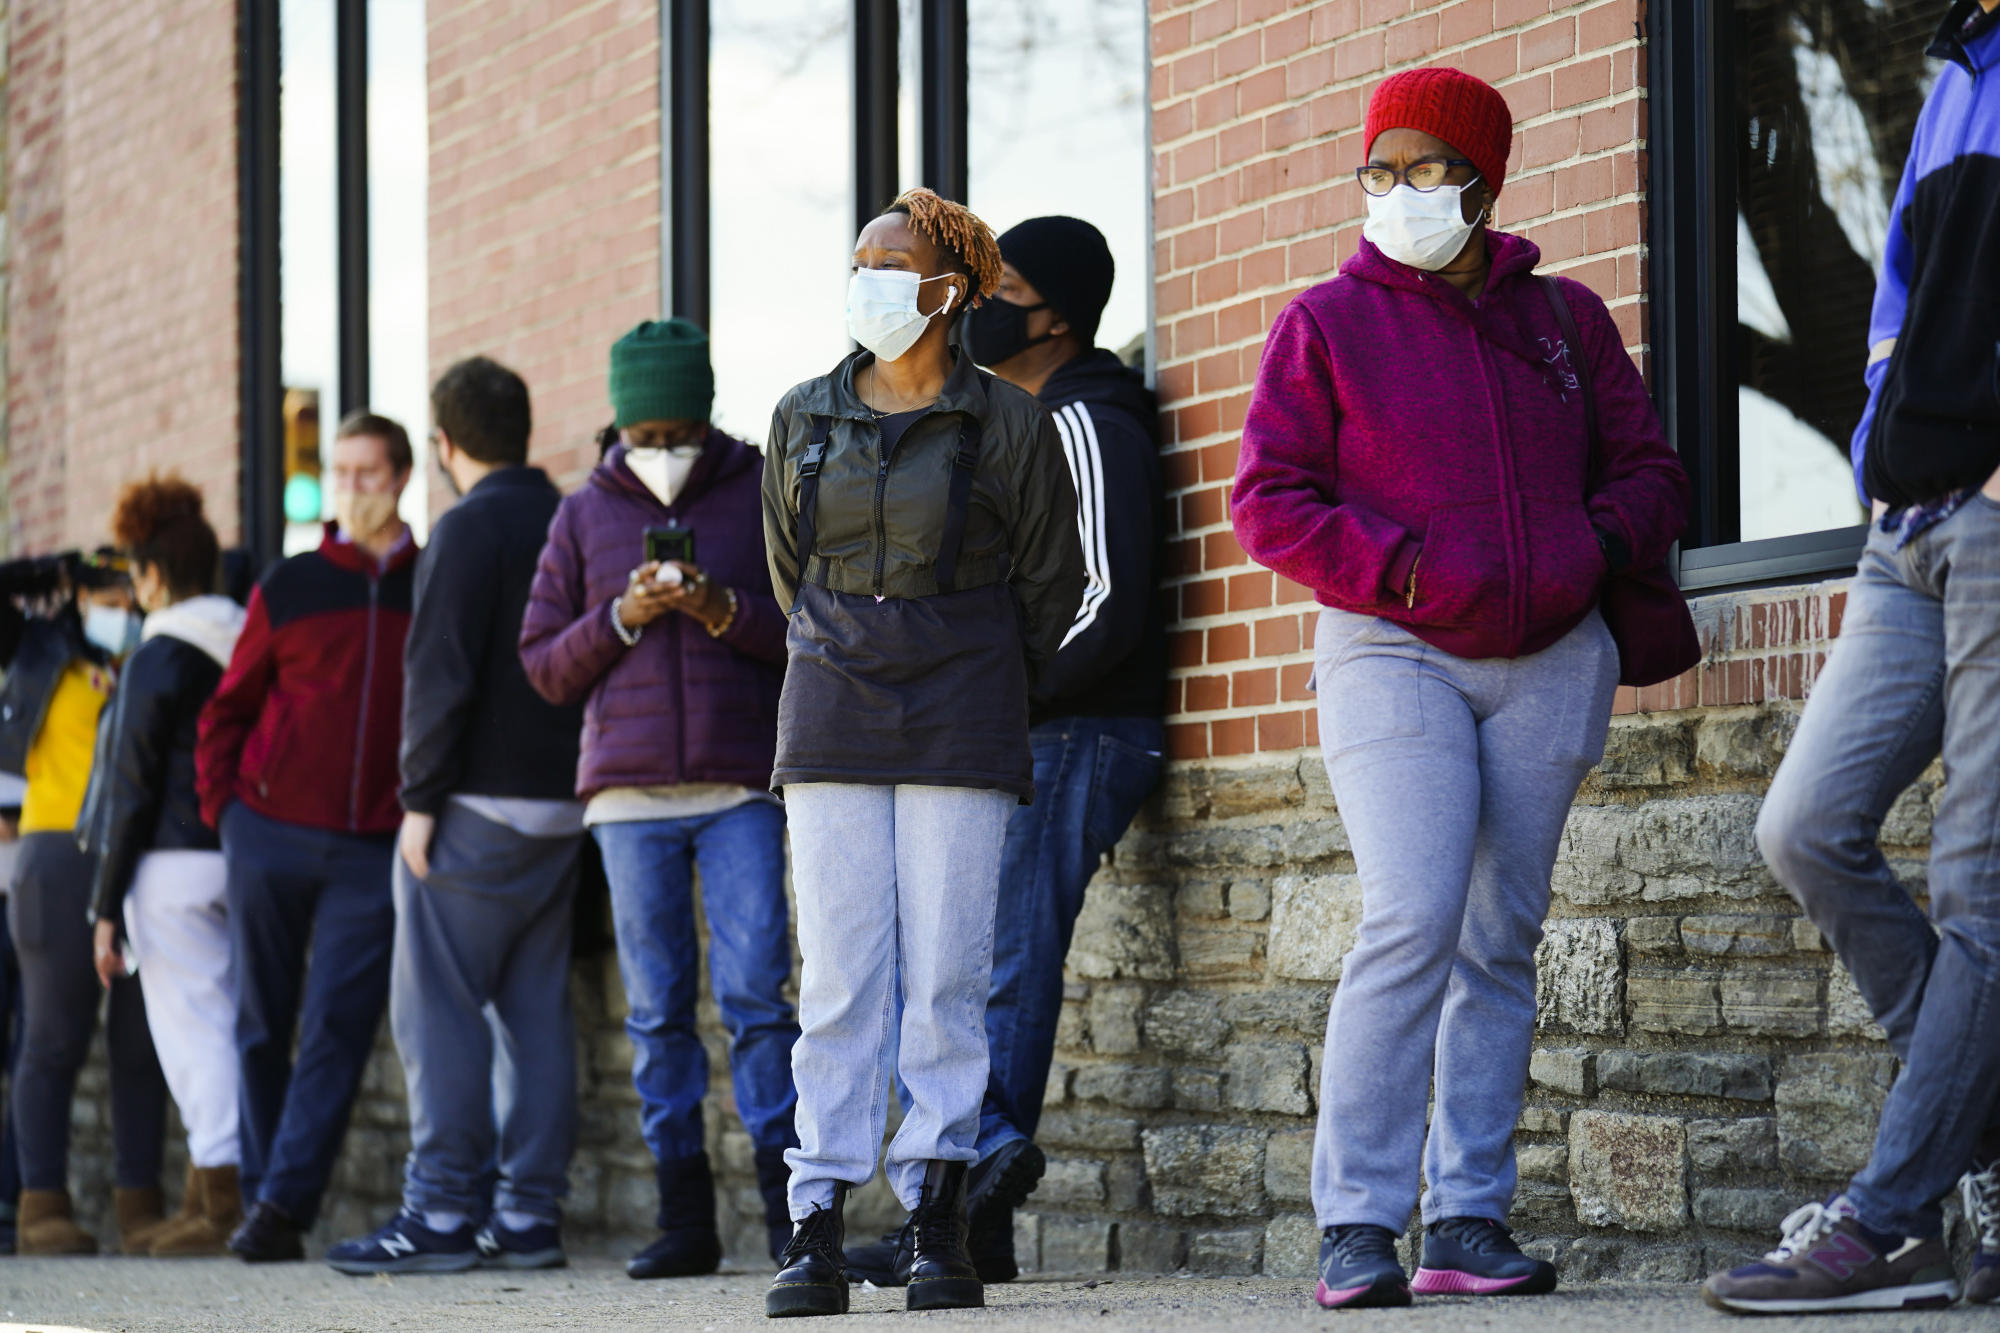 Nearly half of new US virus infections are in just 5 states thumbnail